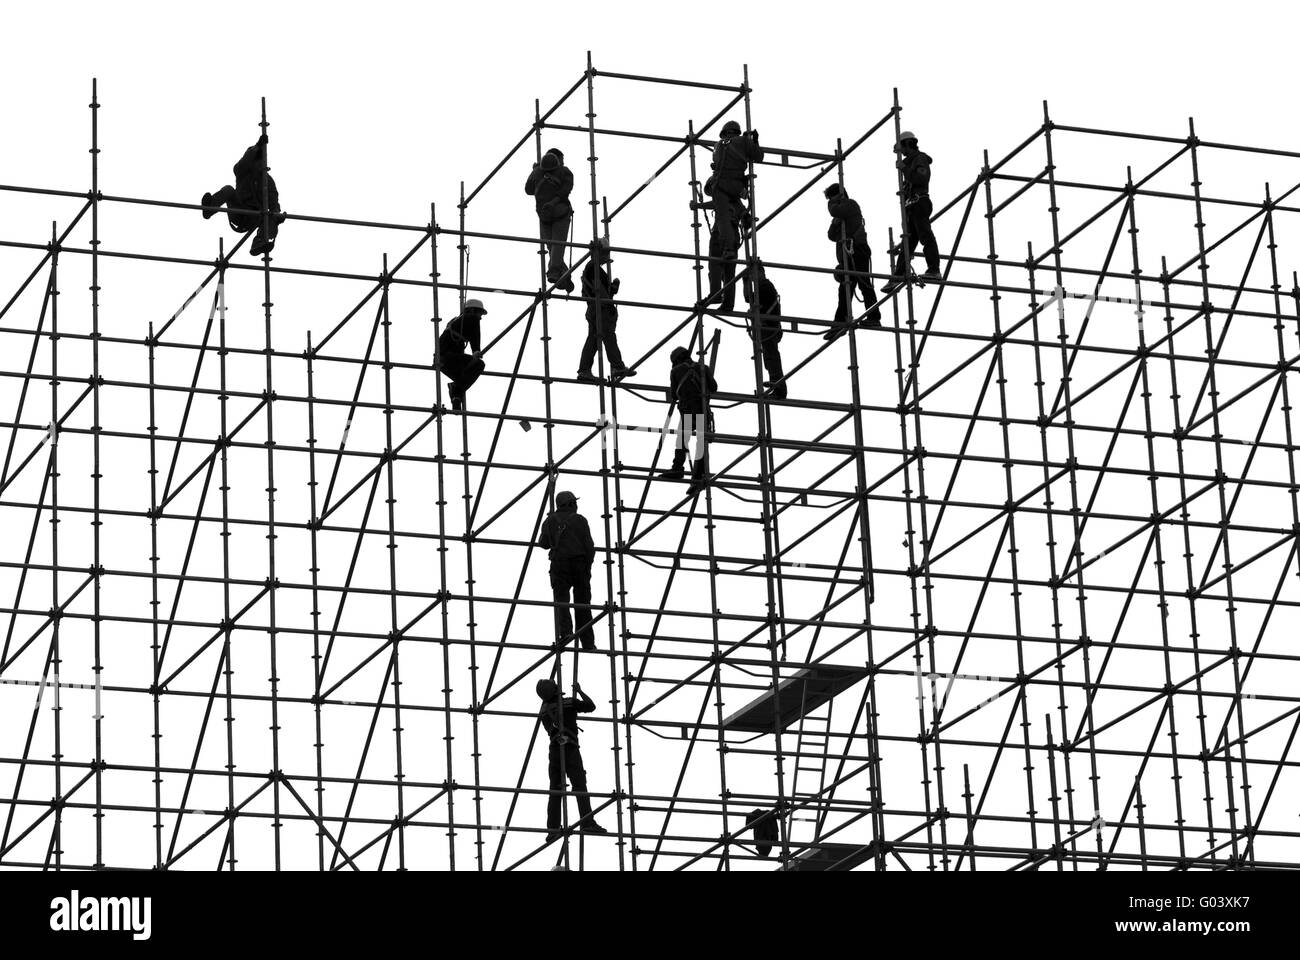 workers on a high-rise scaffolding, Hong Kong - Stock Image